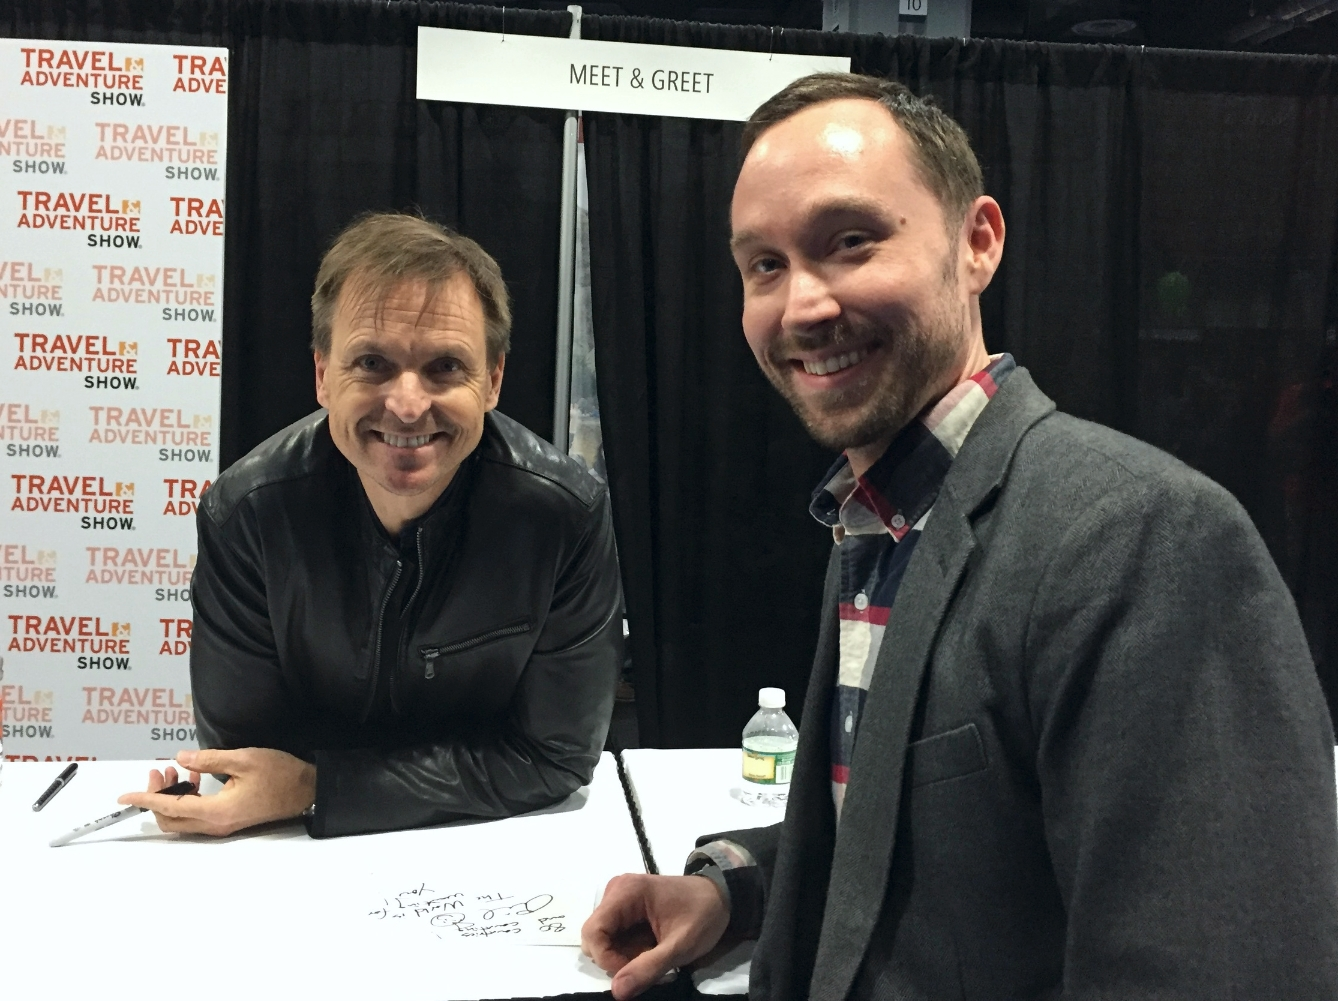 Albert with Phil Keoghan